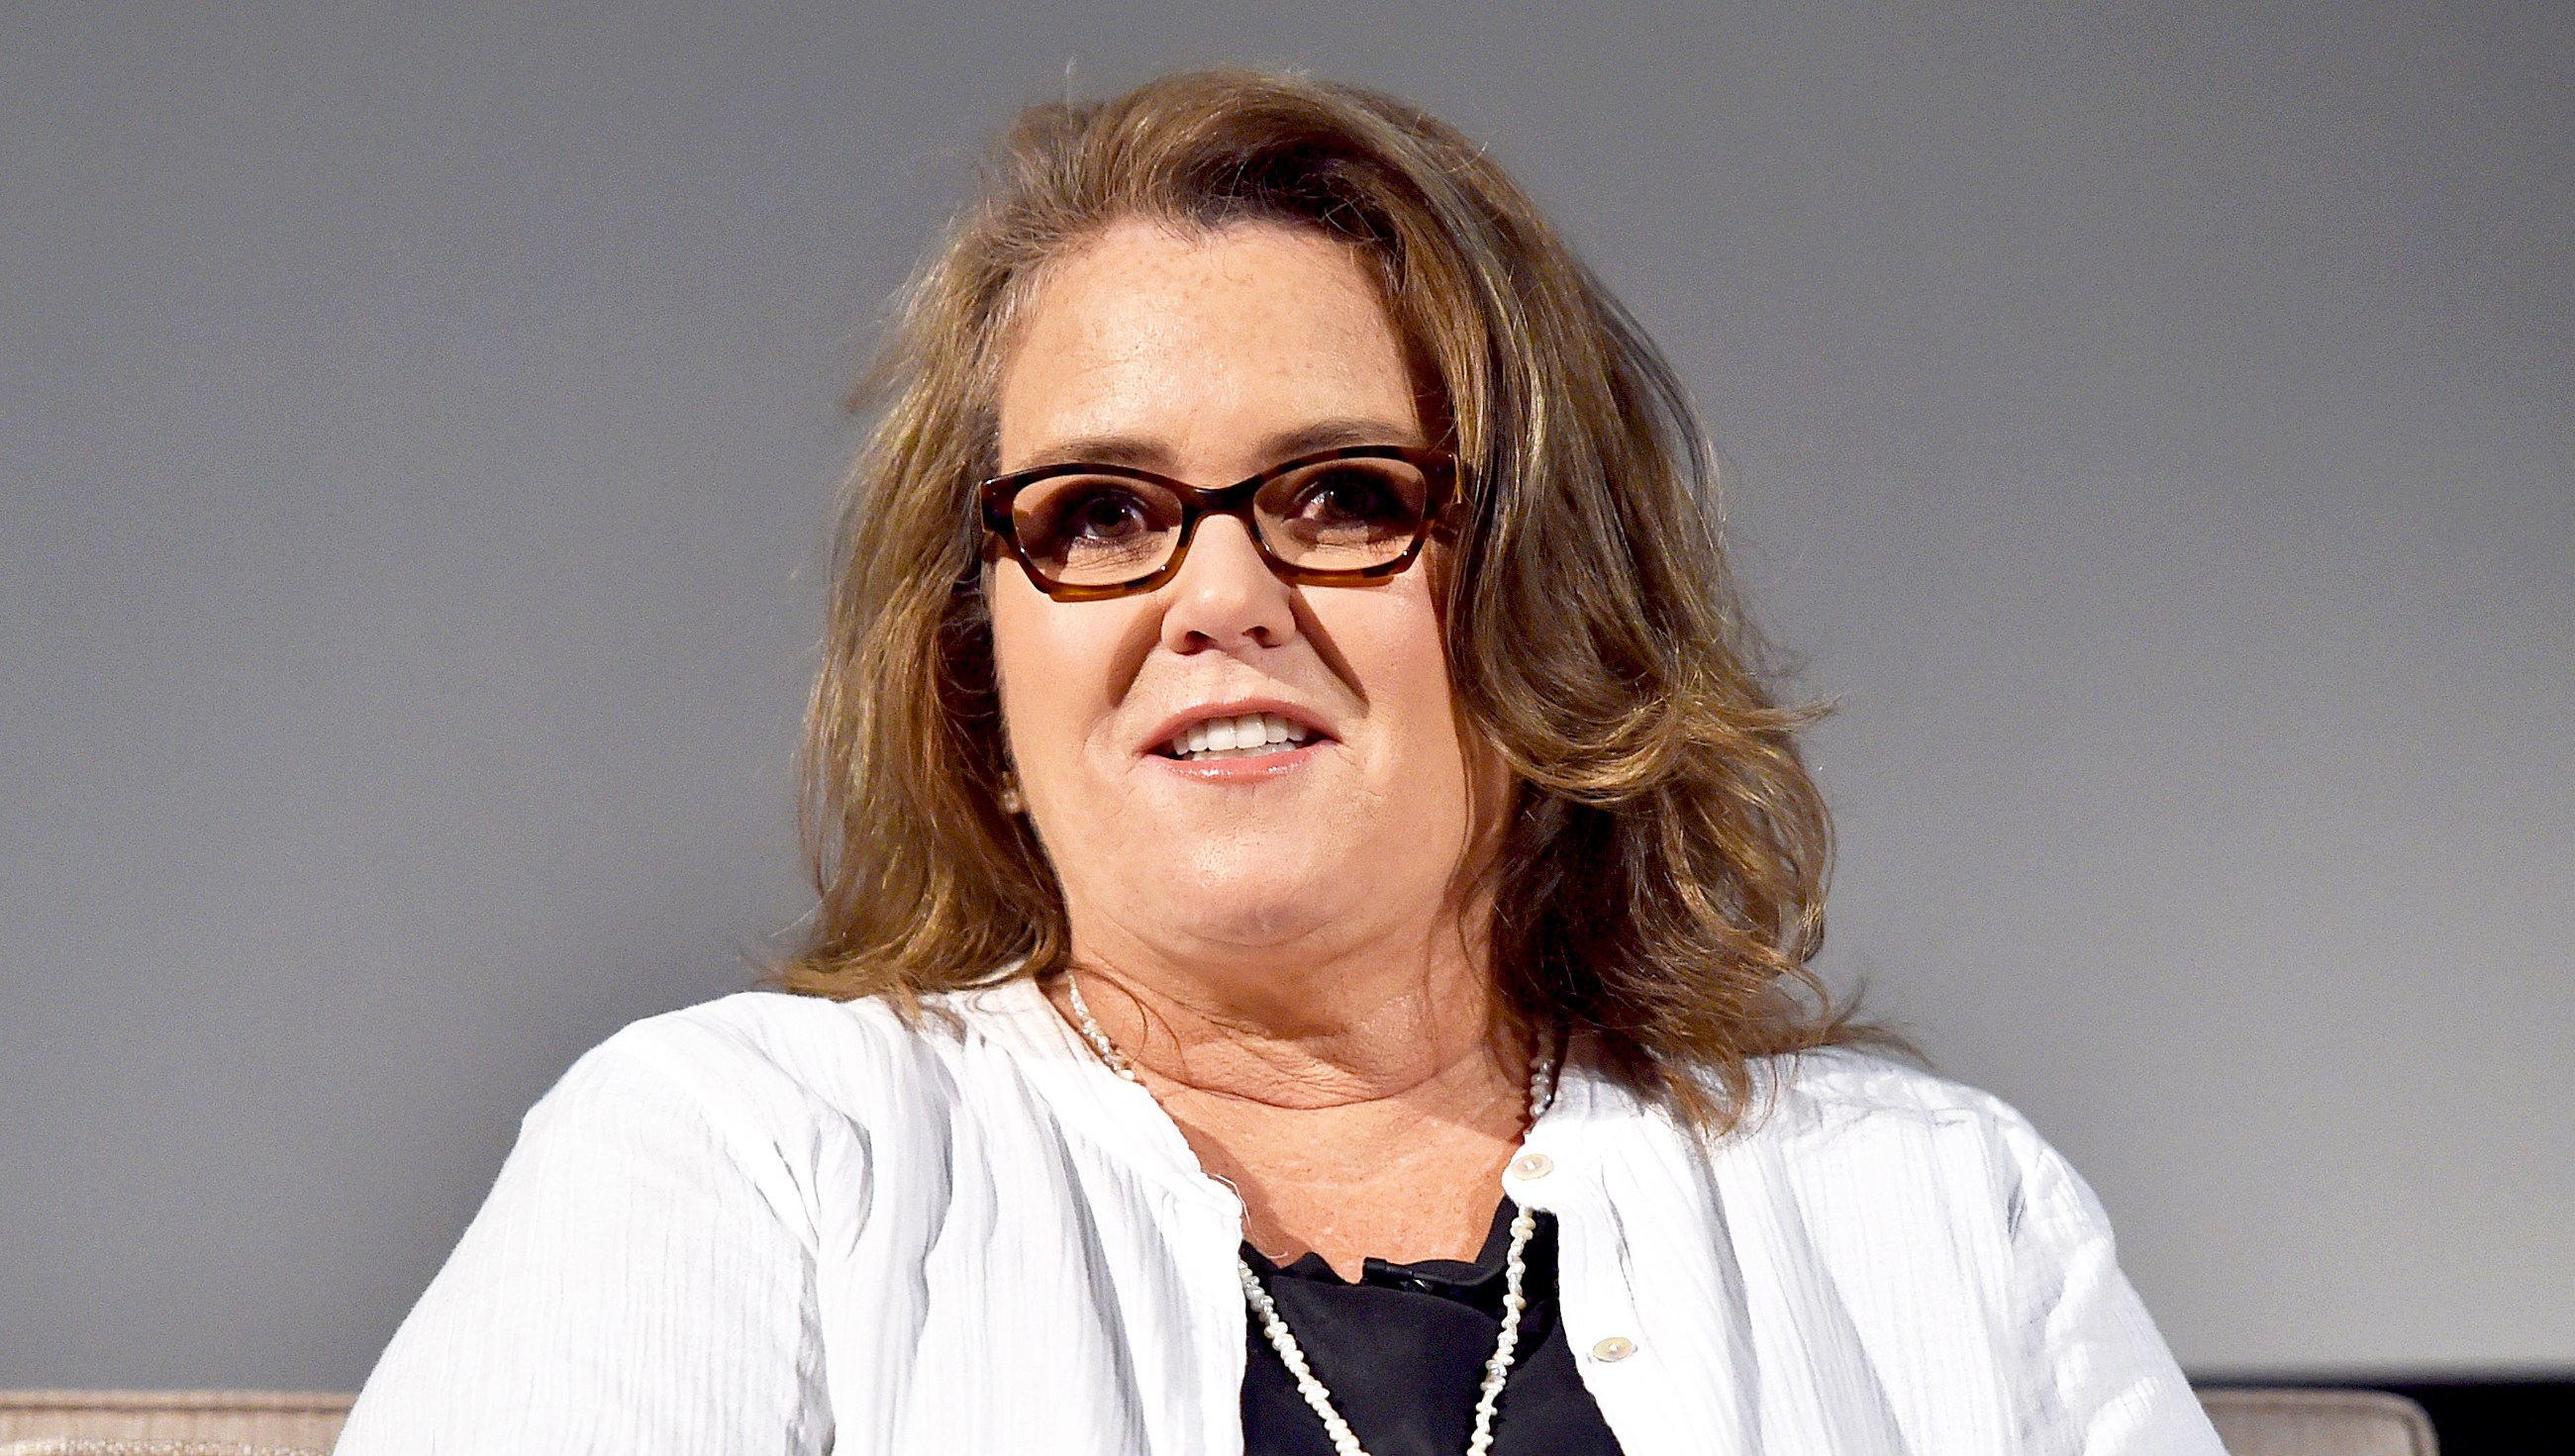 Rosie O'Donnell onstage at the Showtime portion of the 2017 Summer Television Critics Association Press Tour in Los Angeles, California.